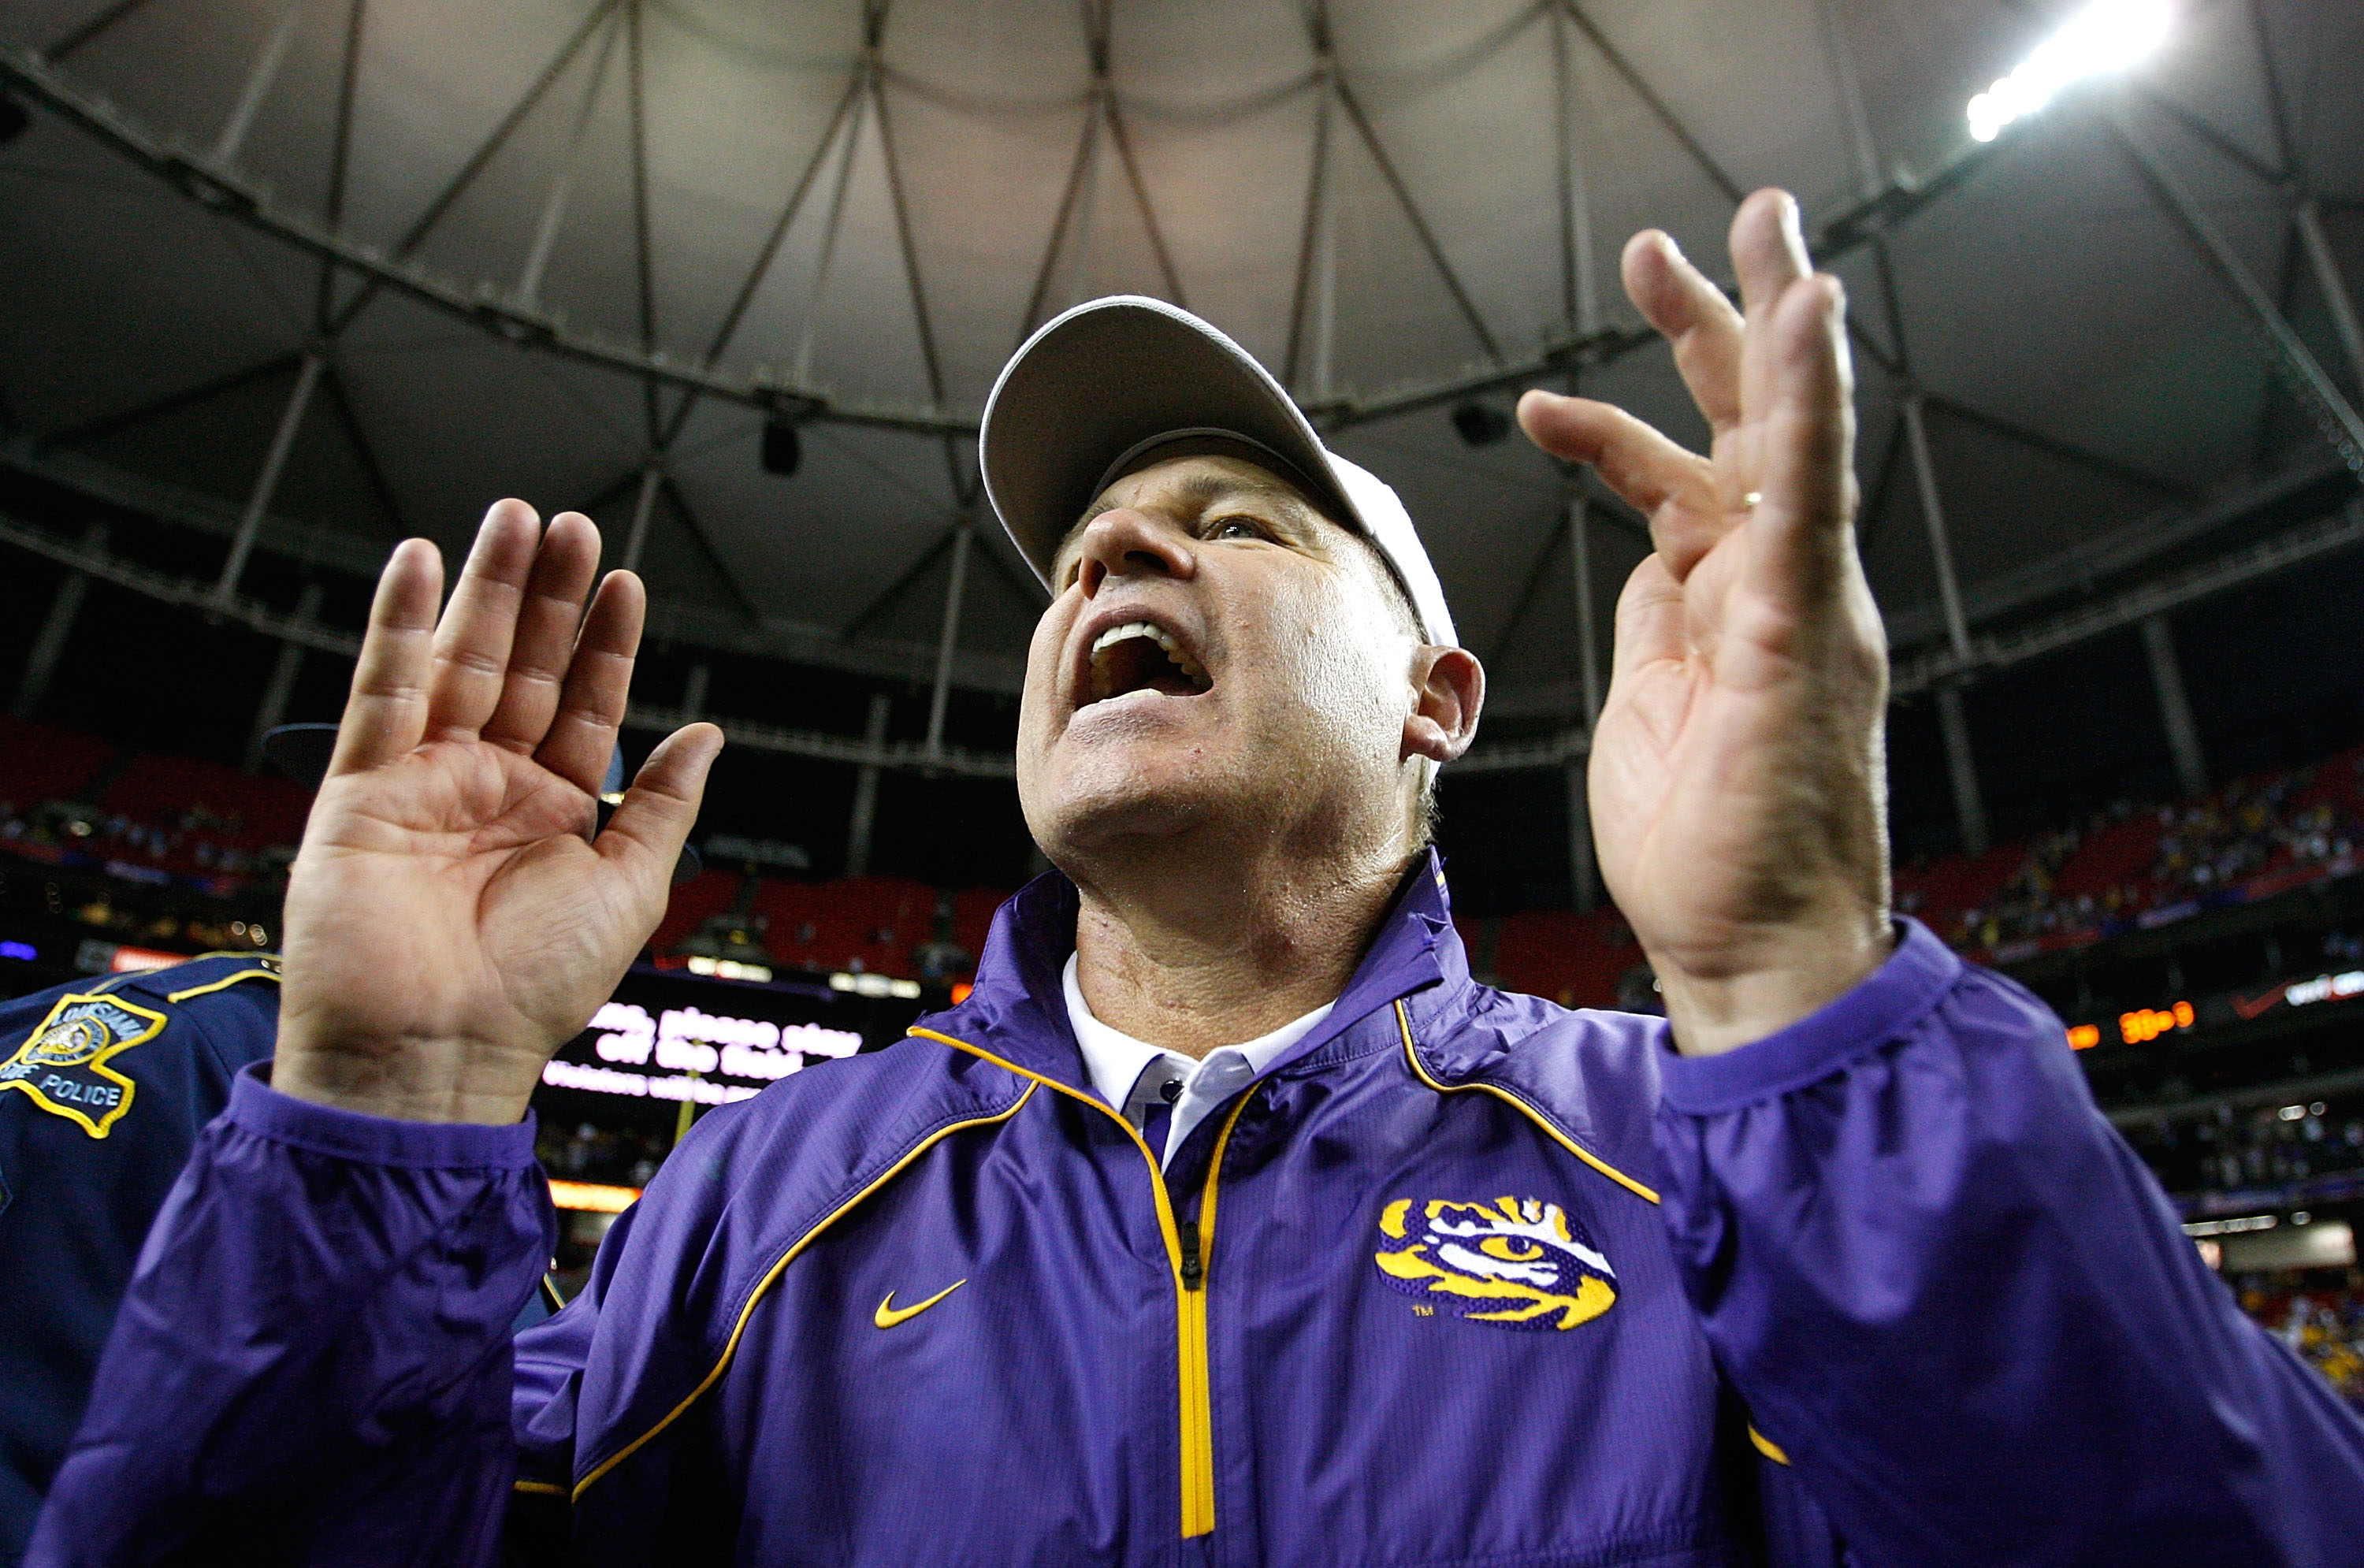 ATLANTA - SEPTEMBER 04:  Head coach Les Miles of the LSU Tigers yells to his team after their 30-24 win over the North Carolina Tar Heels in the Chick-fil-A Kickoff Game at Georgia Dome on September 4, 2010 in Atlanta, Georgia.  (Photo by Kevin C. Cox/Get